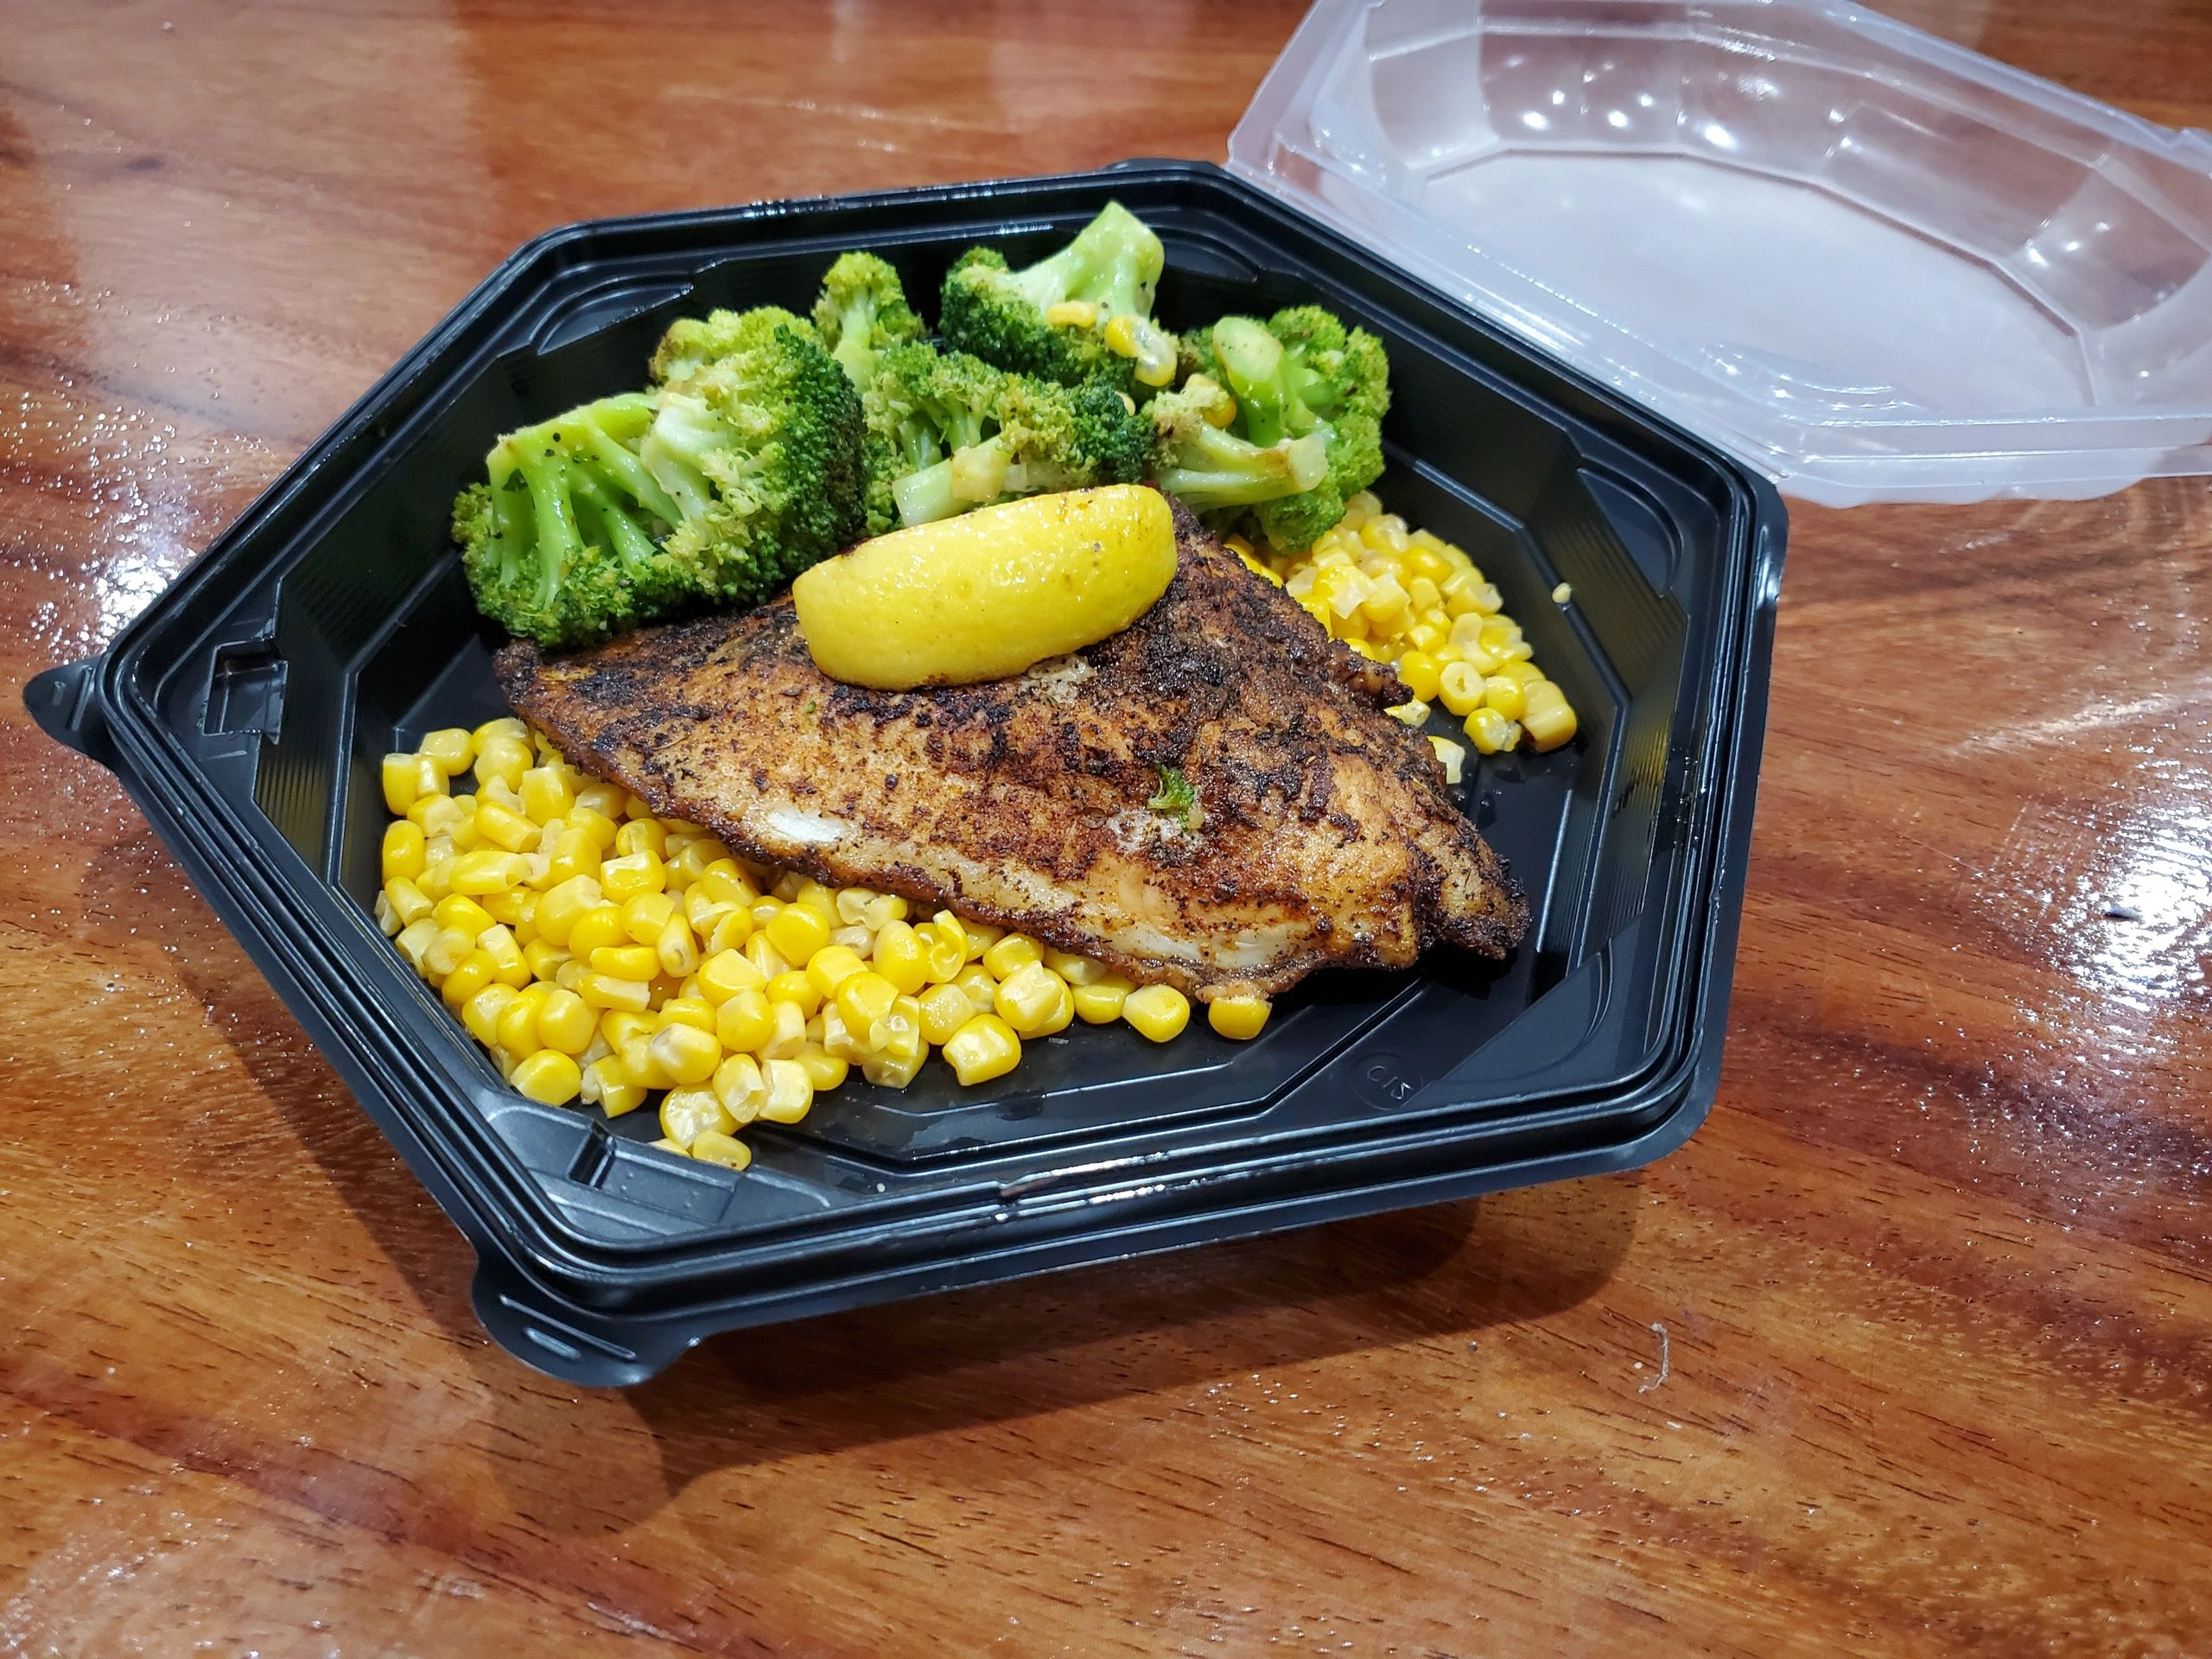 Blackened Catfish with Broccoli and Corn